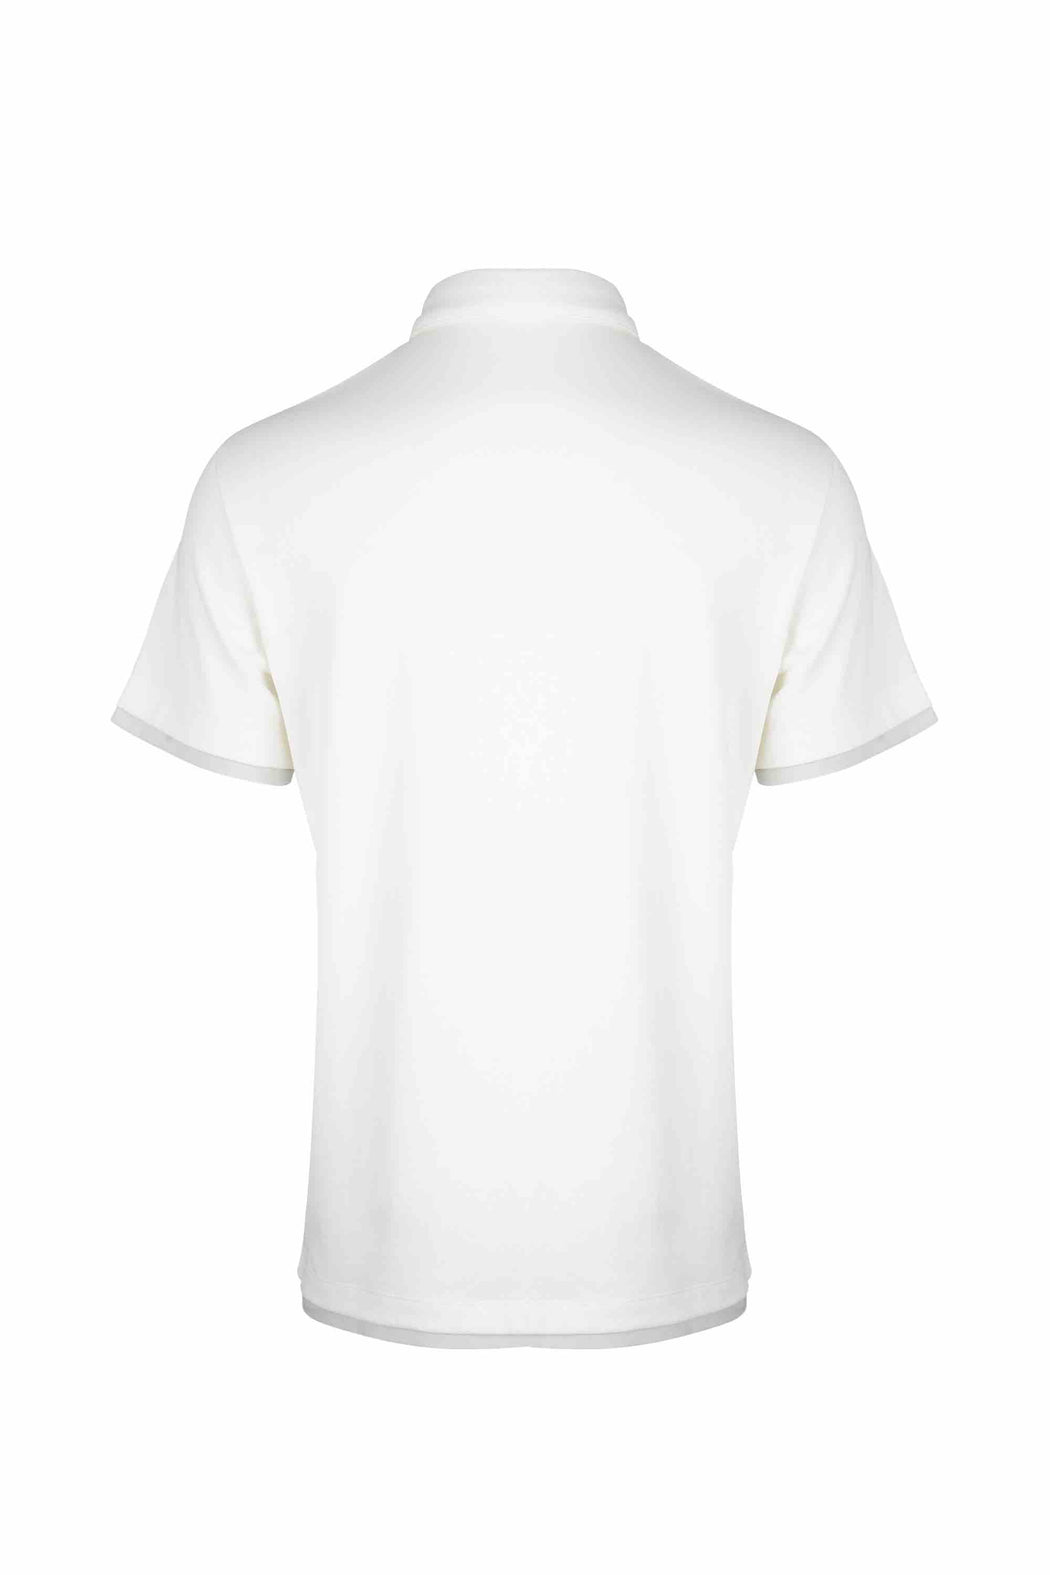 Back view of Men Contrast Polo Shirt, made with Organic Cotton in White